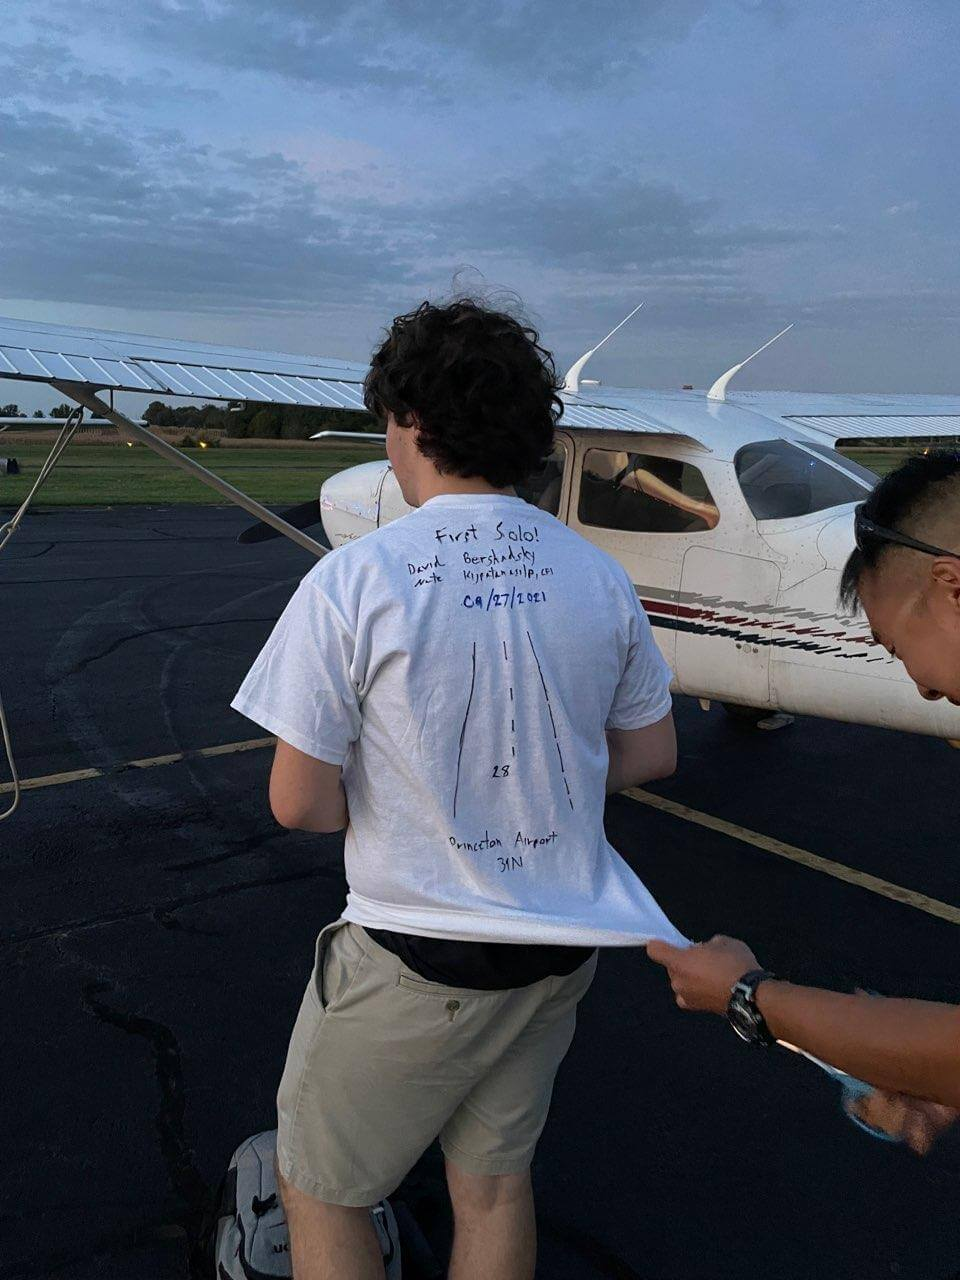 princeton airport first solo